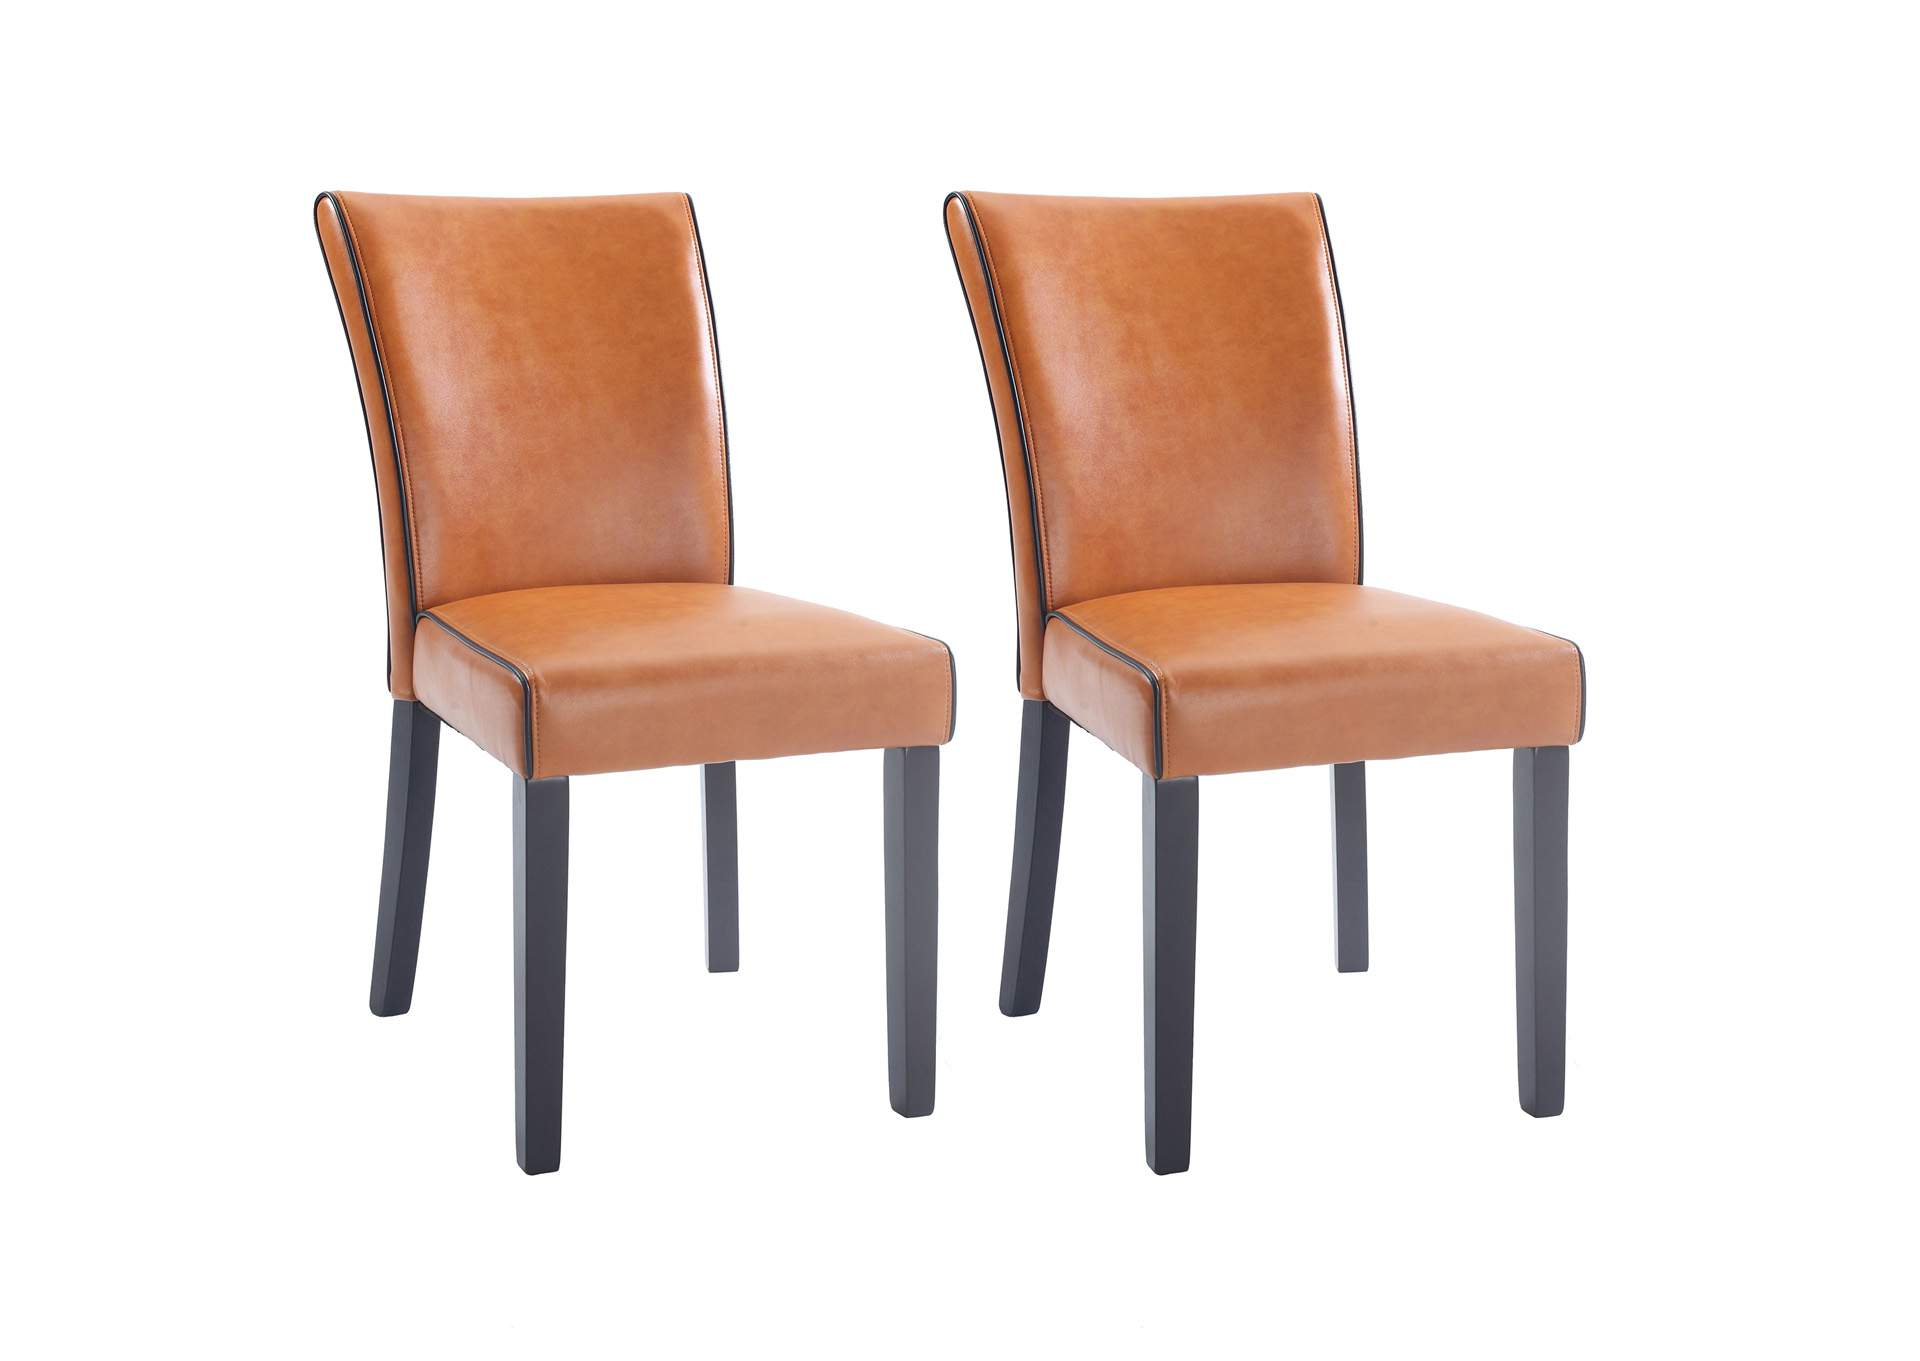 Michelle Orange Bonded Leather Parson Chair (Set of 2),Chintaly Imports